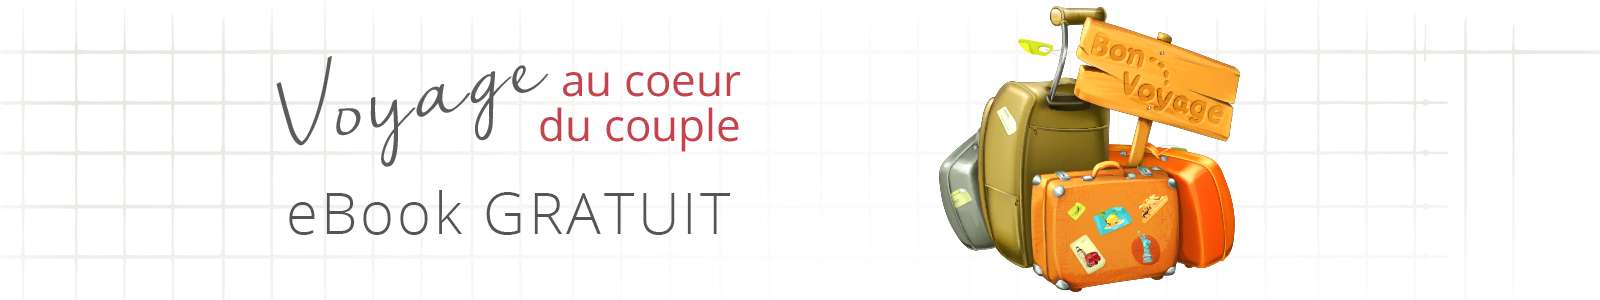 voyage au coeur du couple ebook gratuit en duel ou en duo valerie sentenne intello stephane lecault artiste